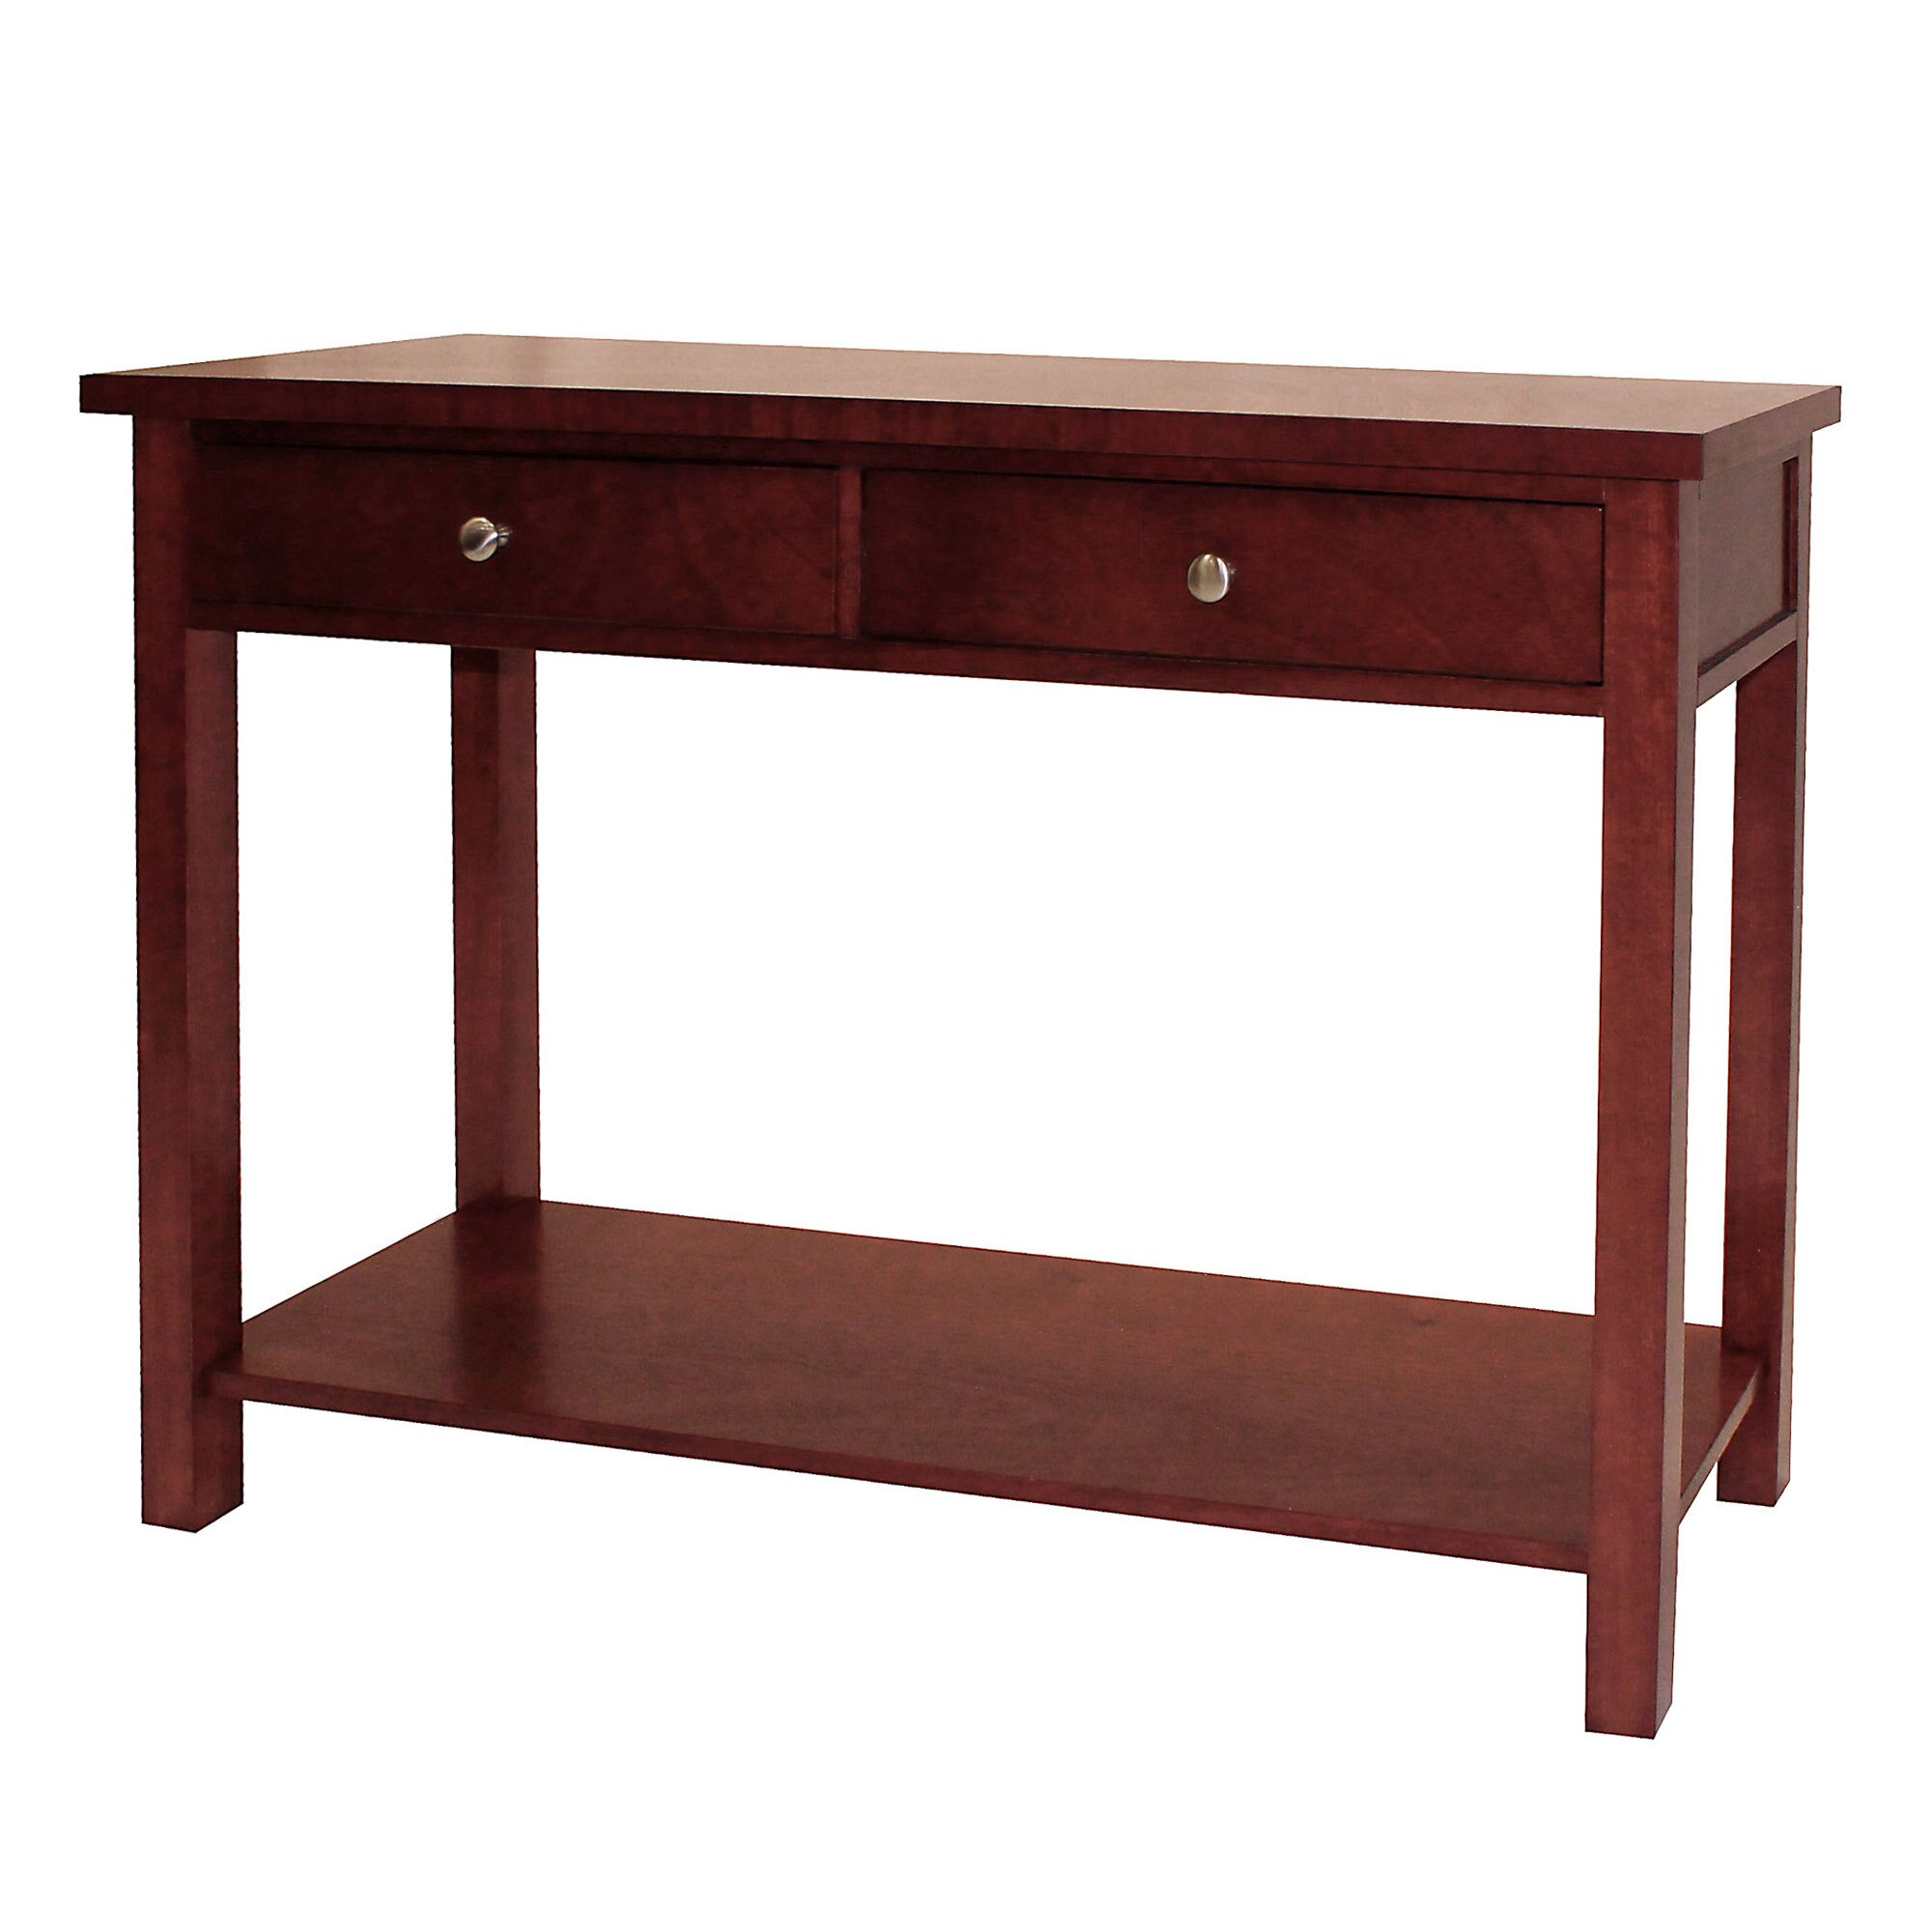 donnieann company oakdale console table reviews wayfair. Black Bedroom Furniture Sets. Home Design Ideas